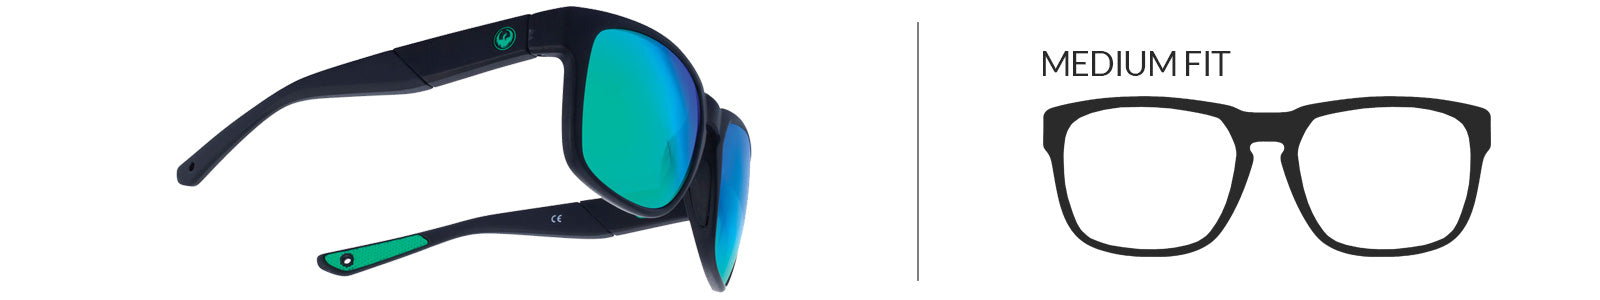 Dragon Seafarer X Sunglasses